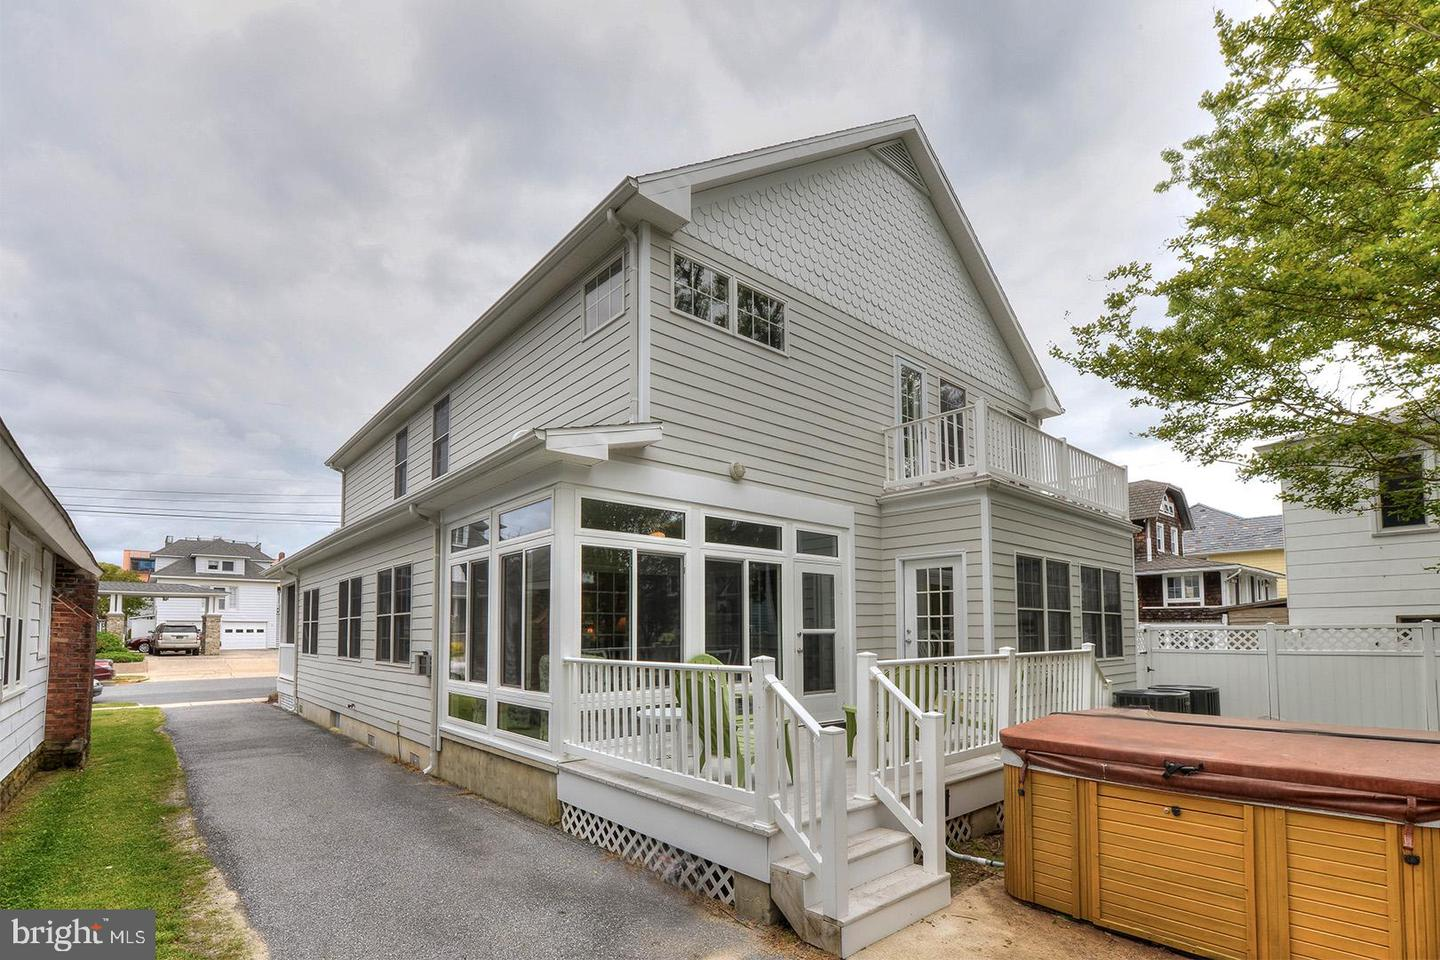 DESU139874-301711164881-2019-05-16-07-32-35 10 New Castle St | Rehoboth Beach, DE Real Estate For Sale | MLS# Desu139874  - Rehoboth Beach Real Estate - Bryce Lingo and Shaun Tull REALTORS, Rehoboth Beach, Delaware